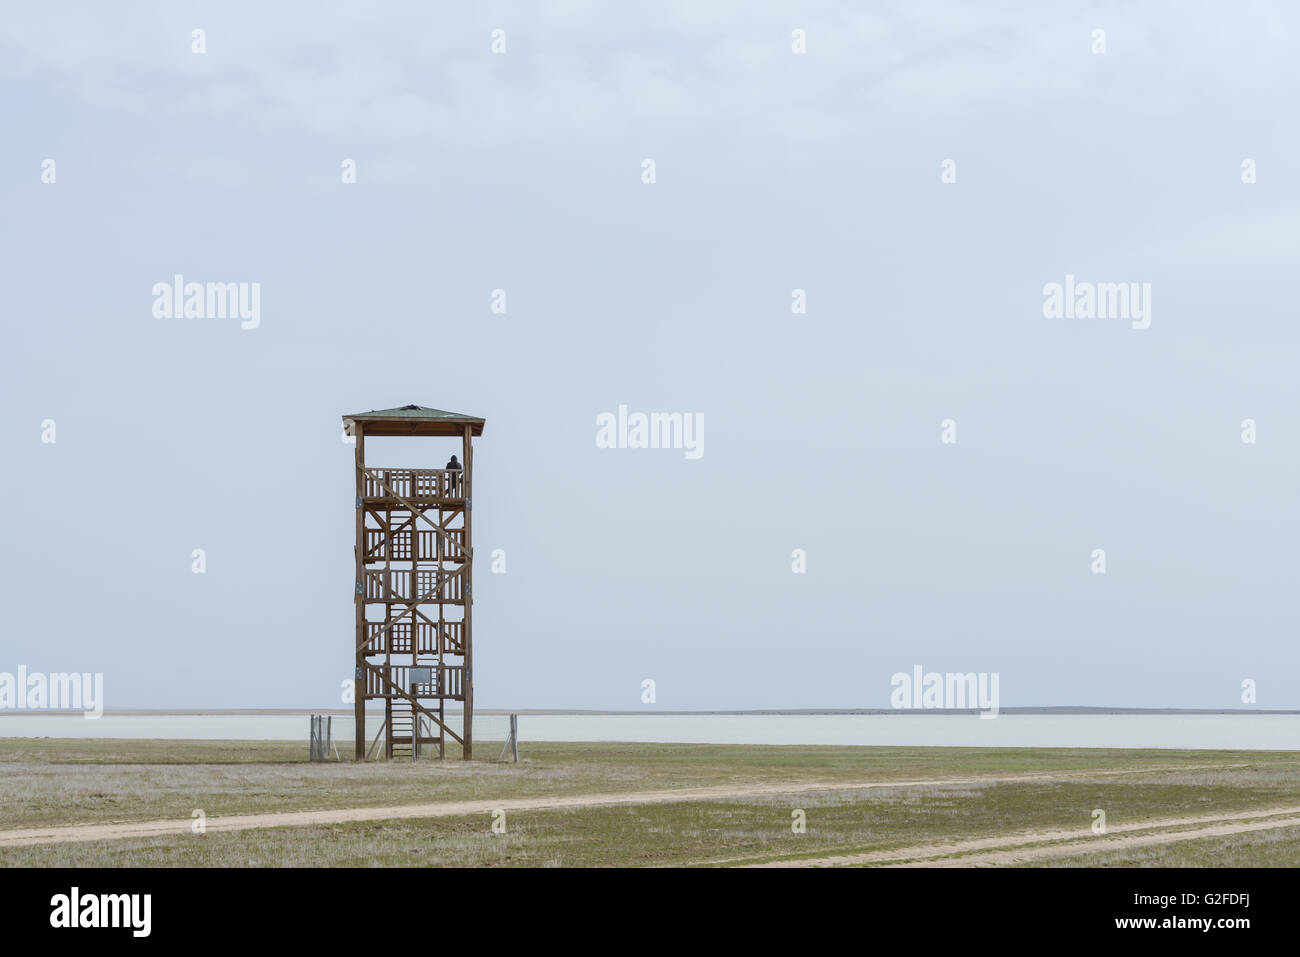 Alone observant tower and silhouette of man - Stock Image